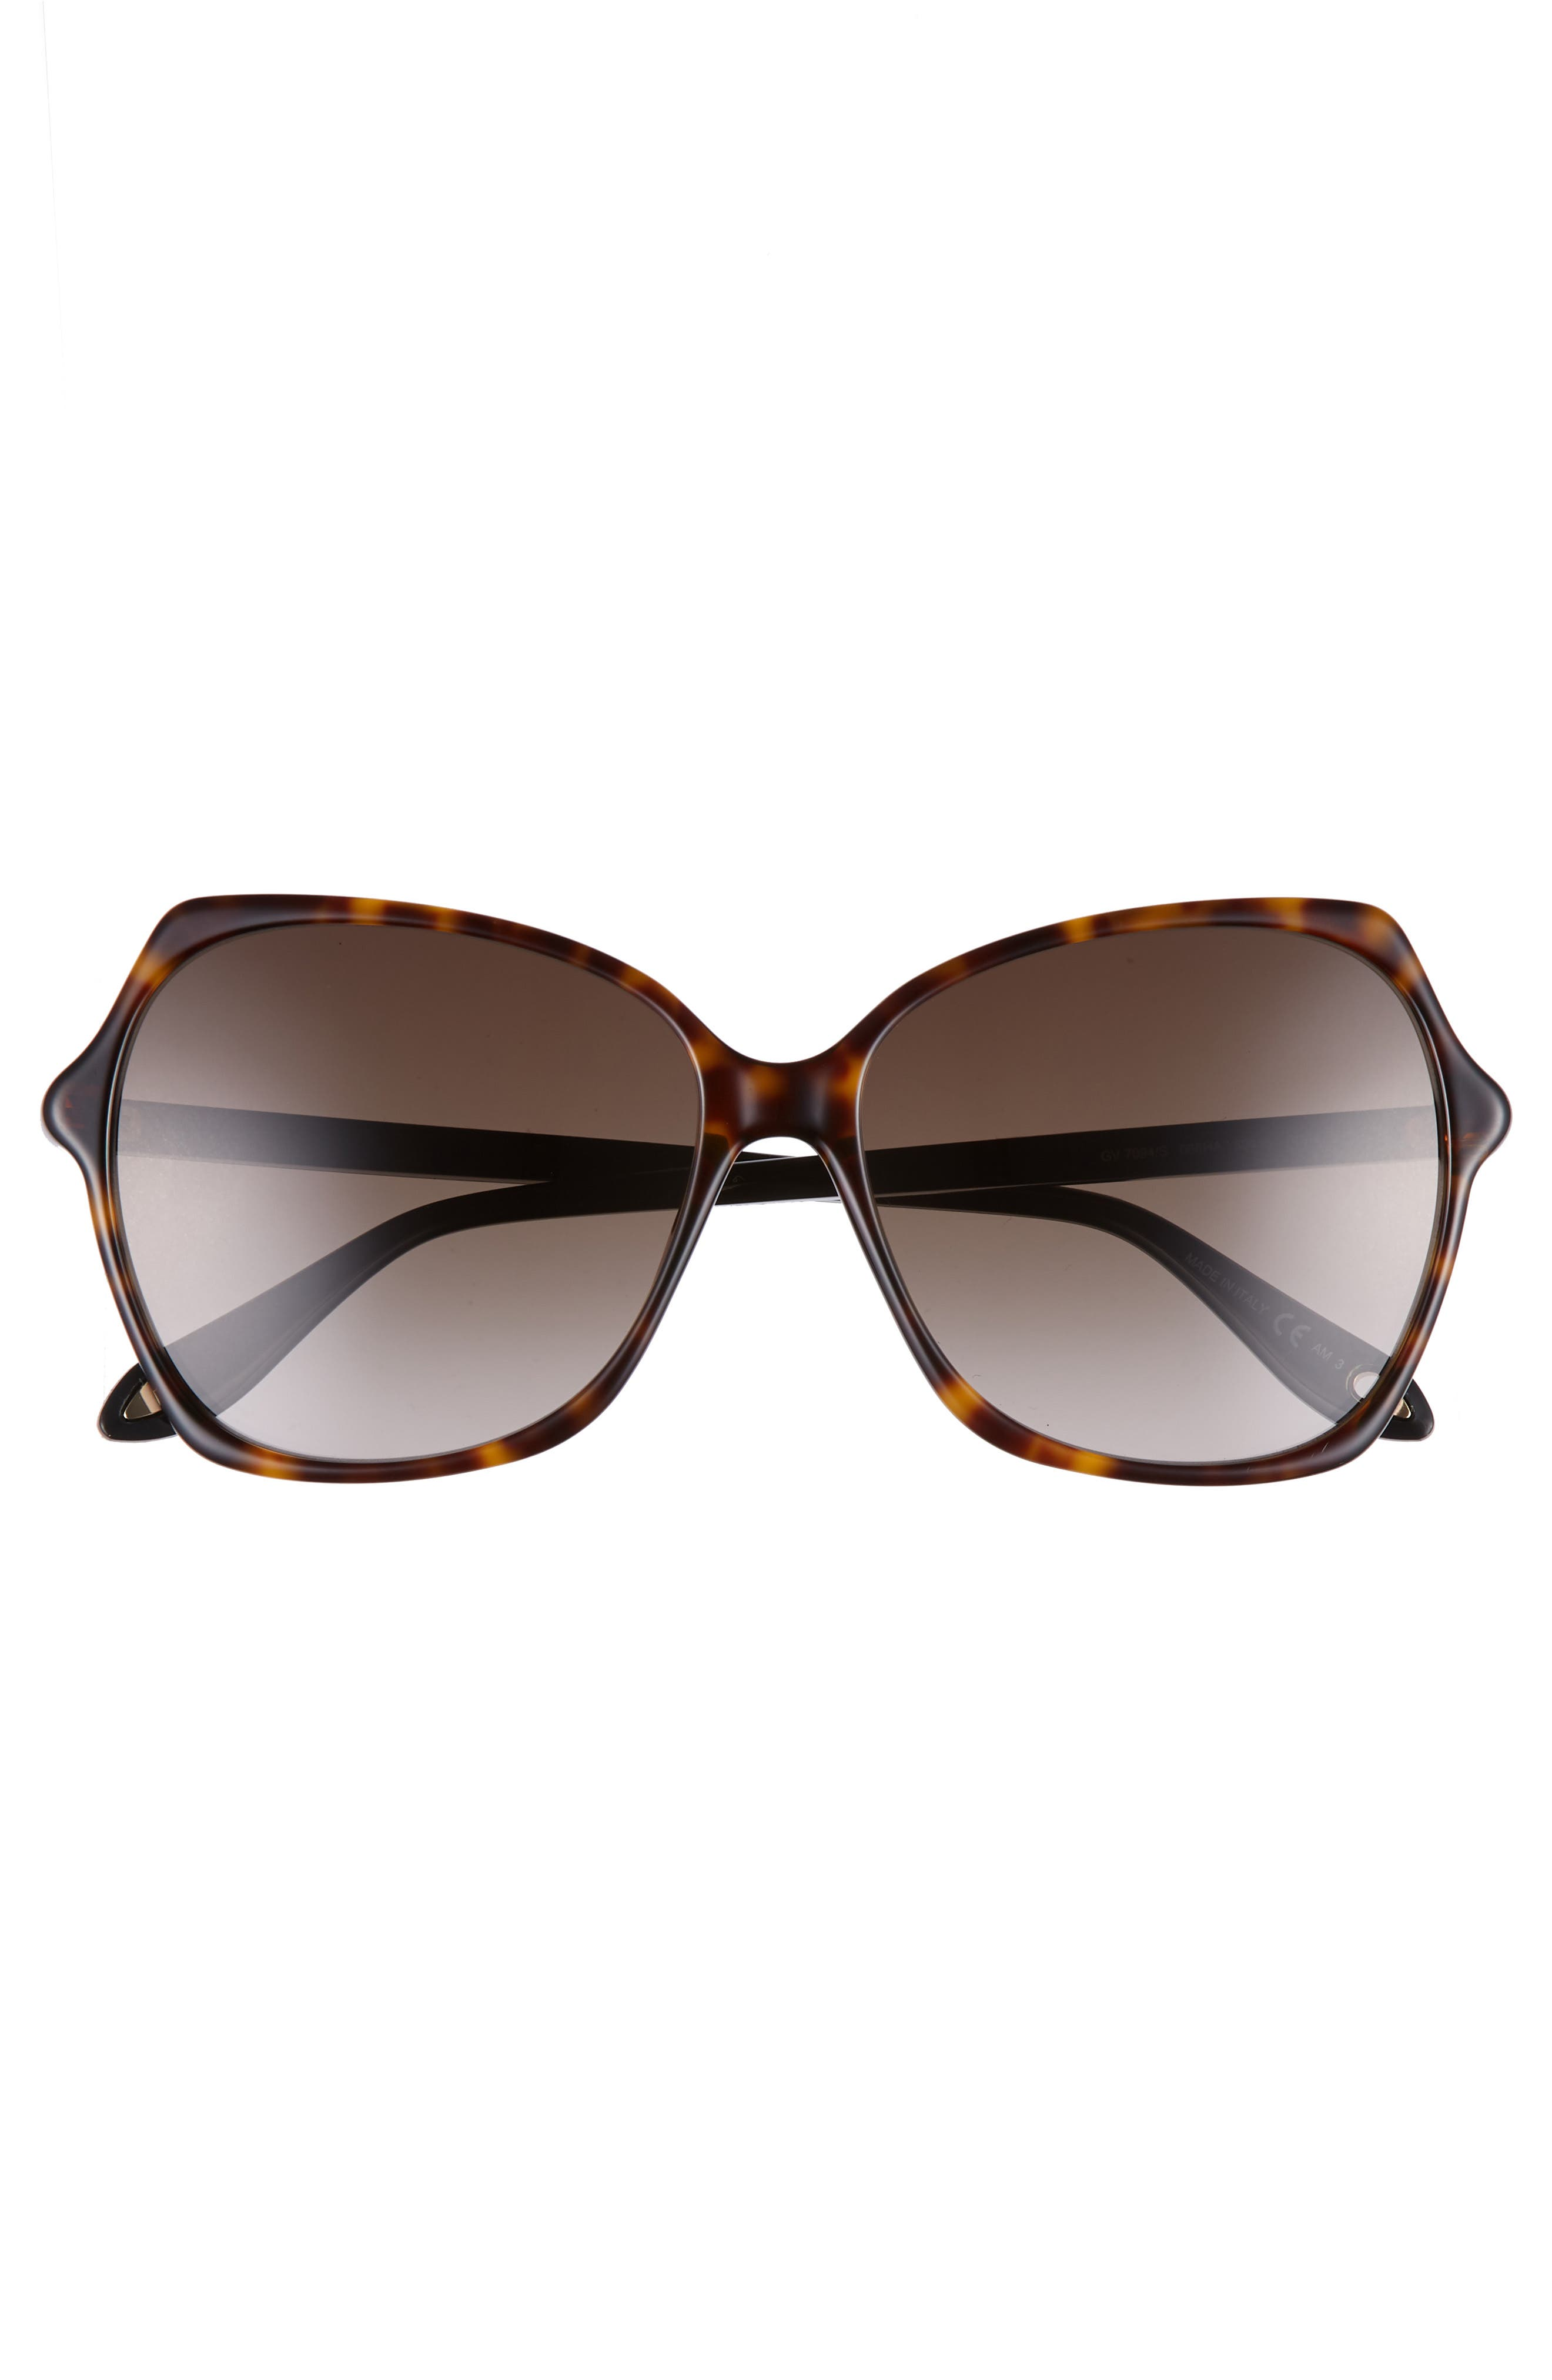 Alternate Image 3  - Givenchy 59mm Butterfly Sunglasses